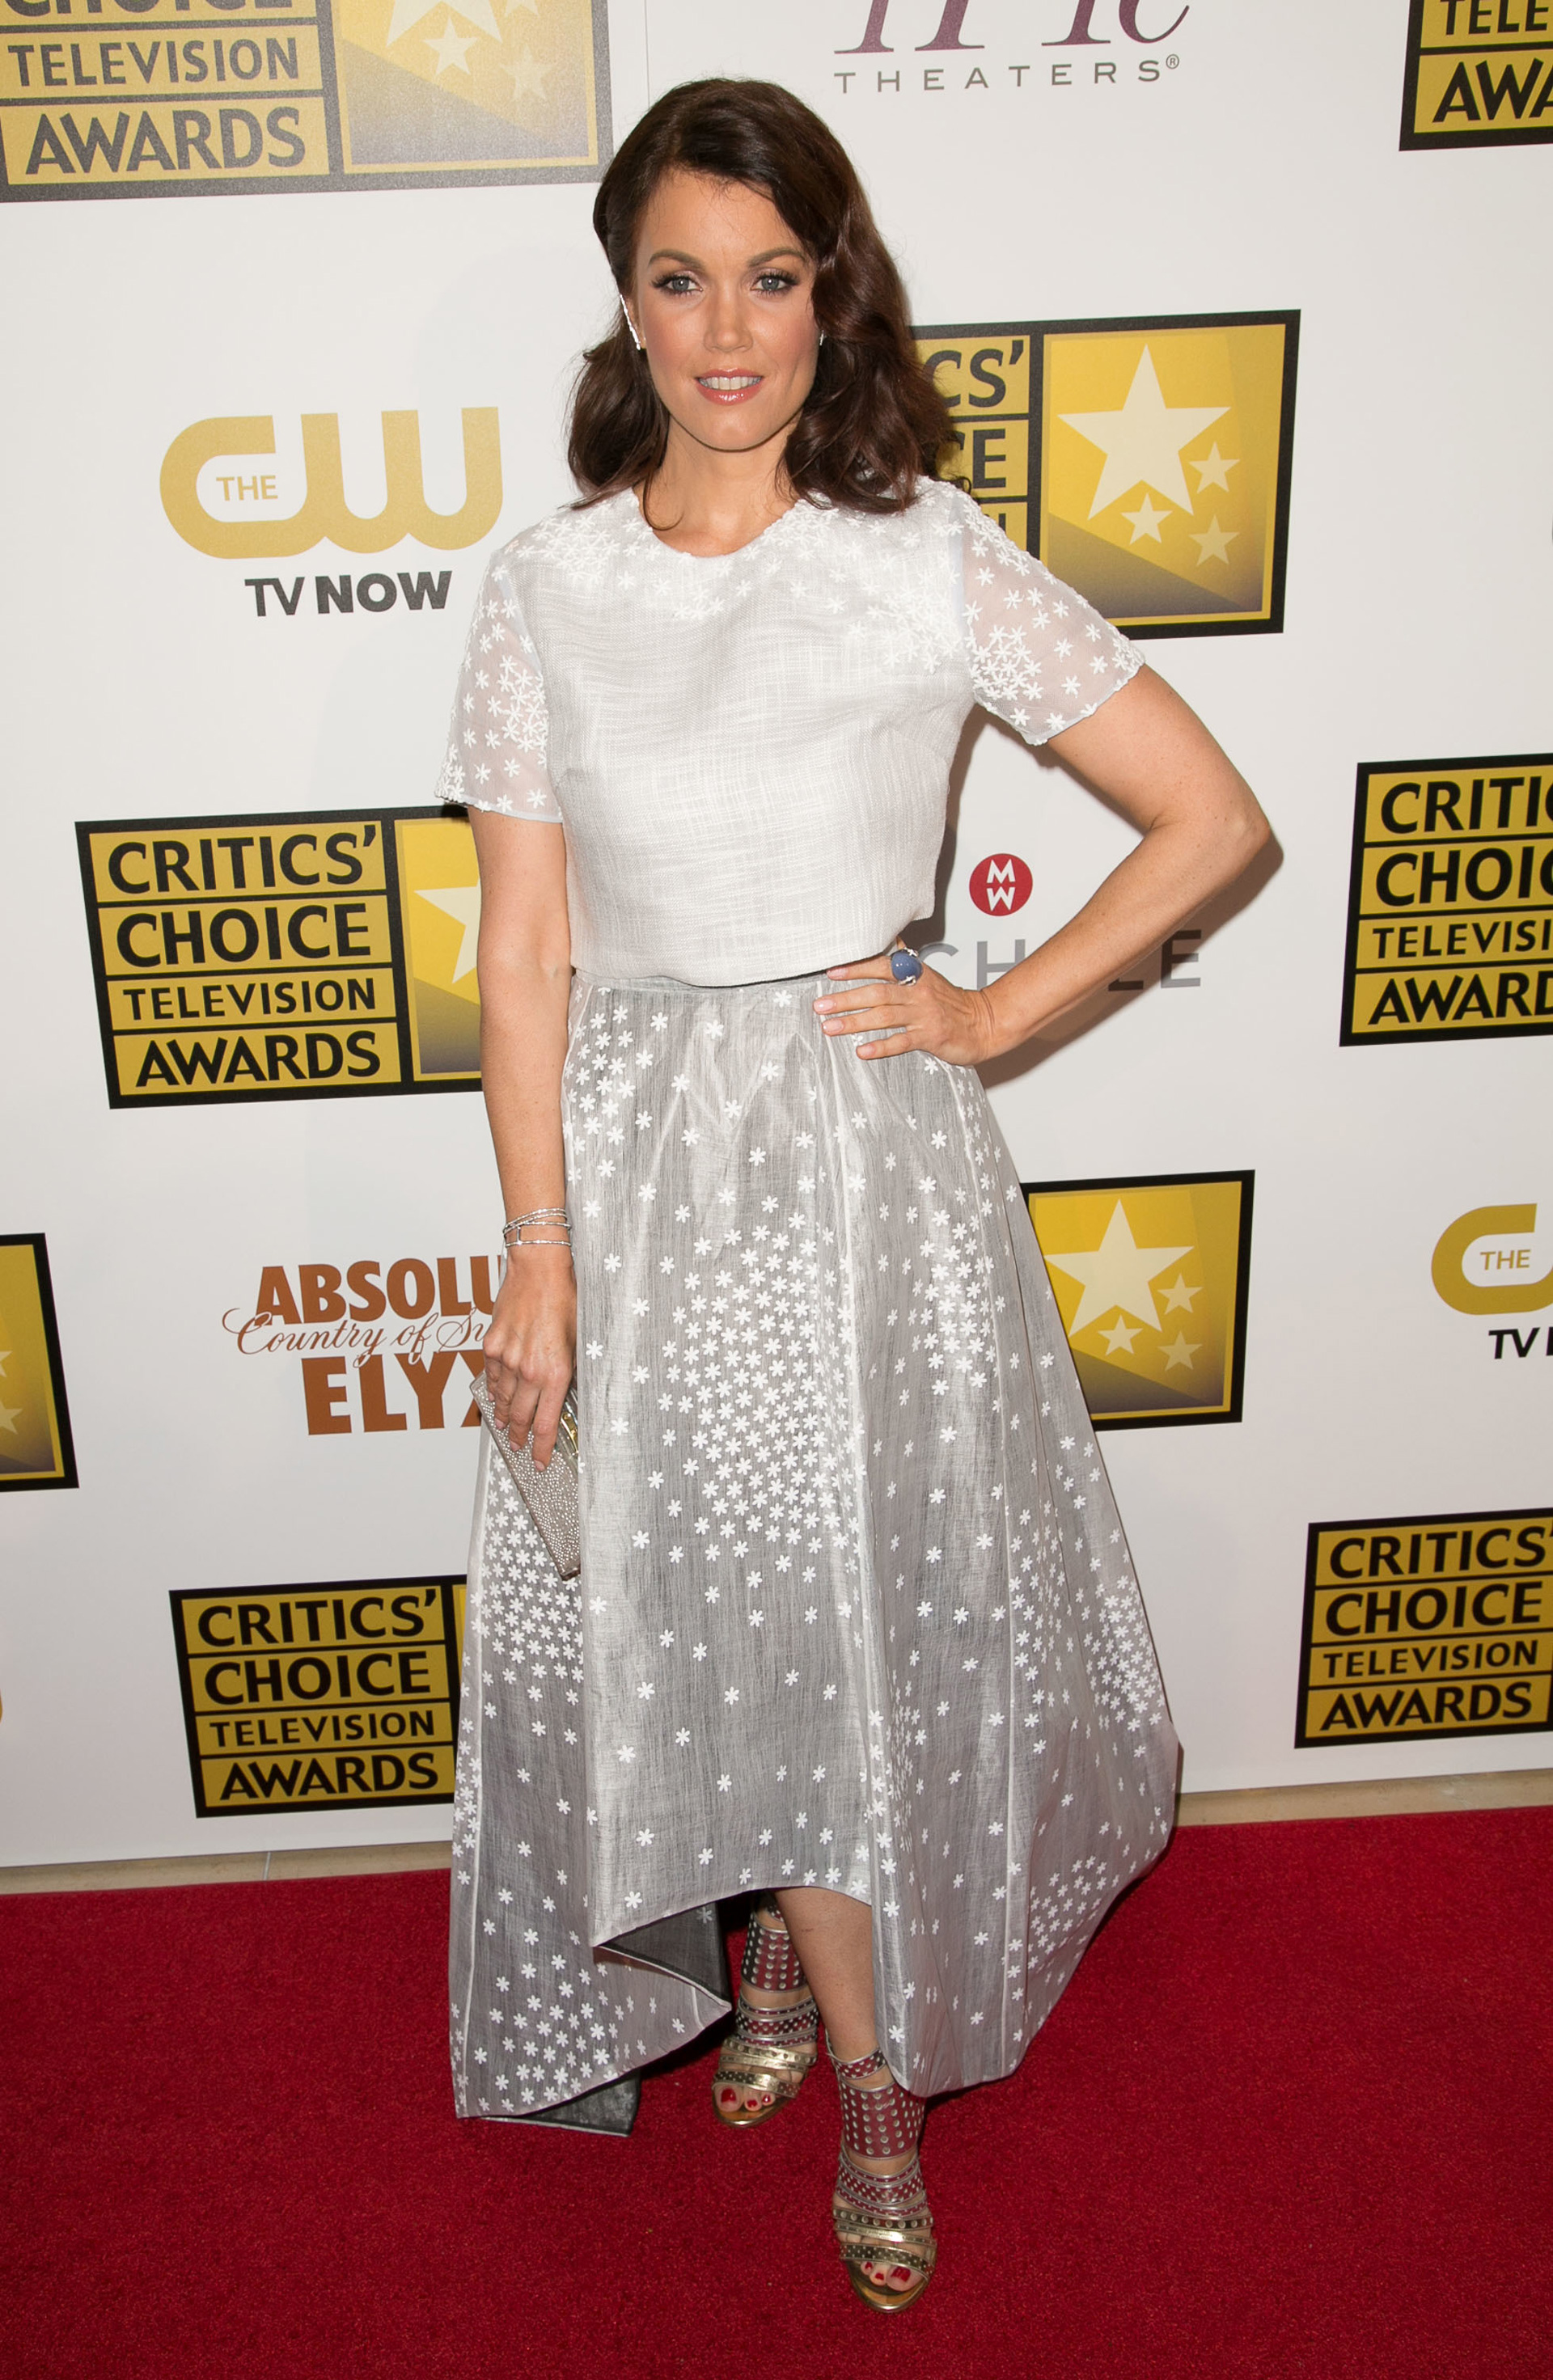 Bellamy Young at the Critic's Choice Awards